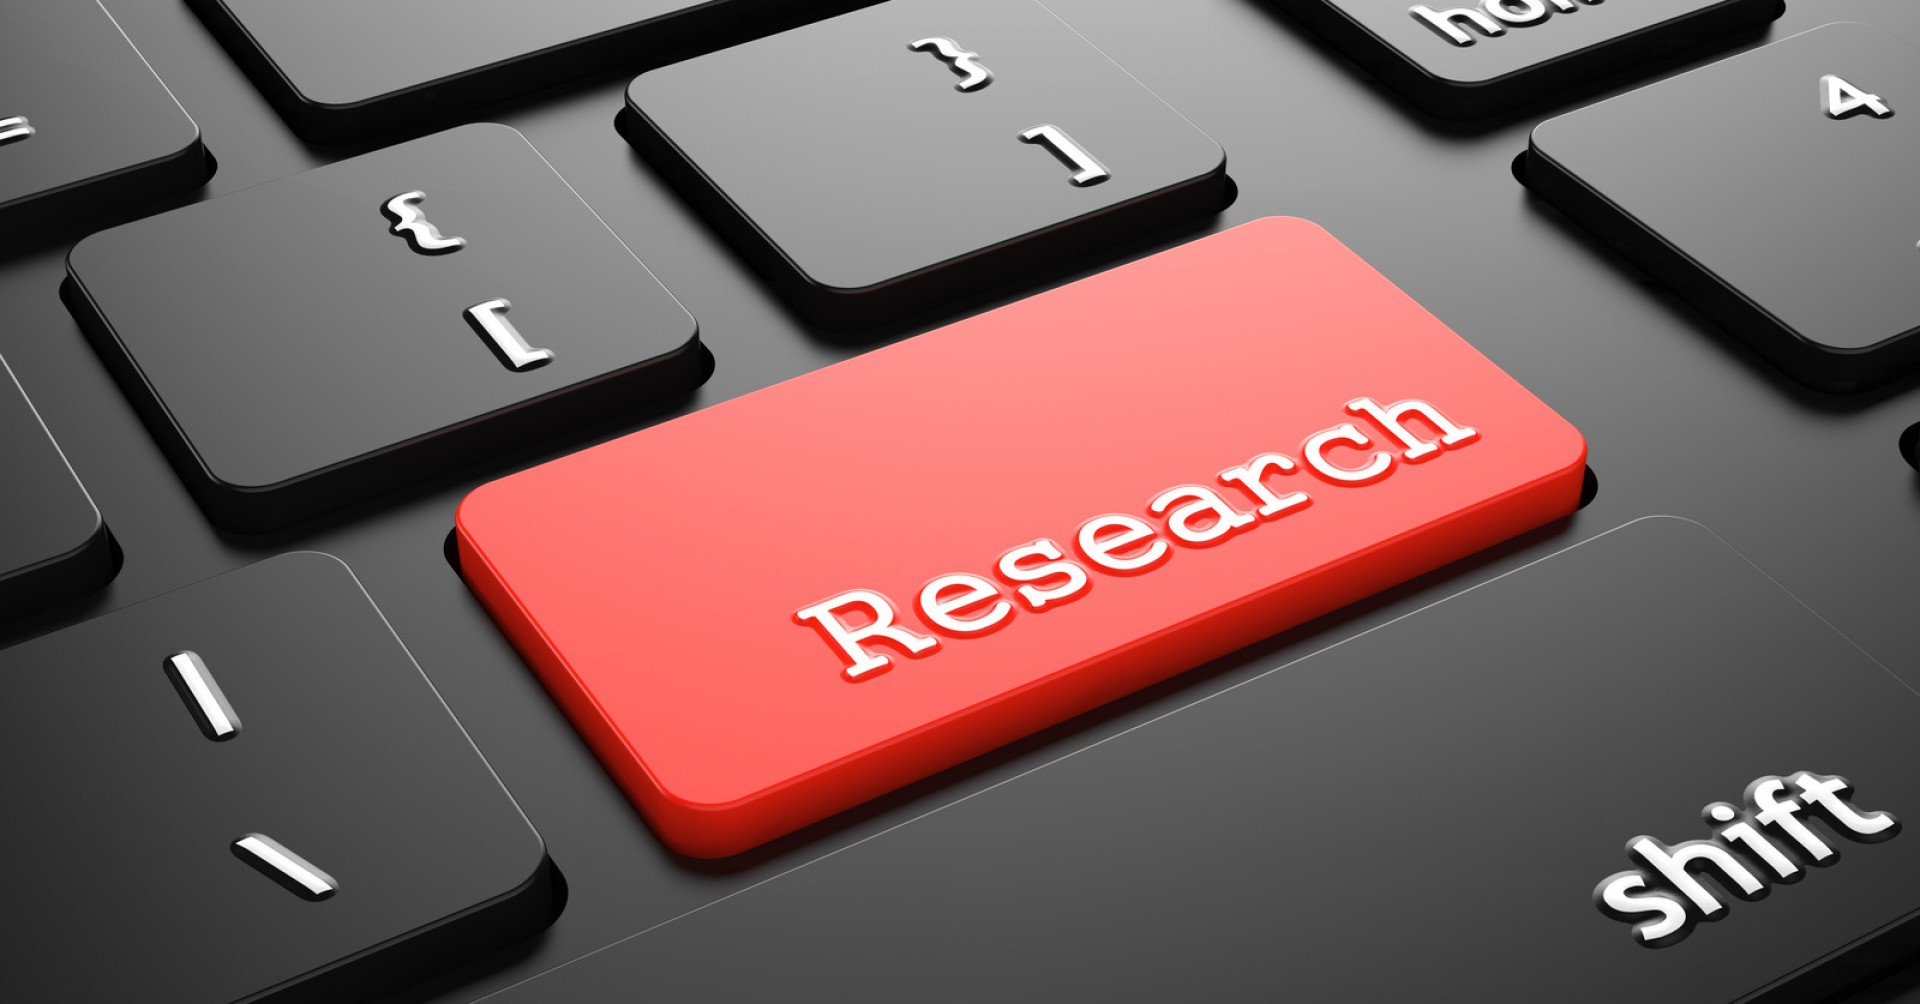 012 Researchkey Best Site To Get Free Researchs Imposing Research Papers How Download From Sciencedirect 1920